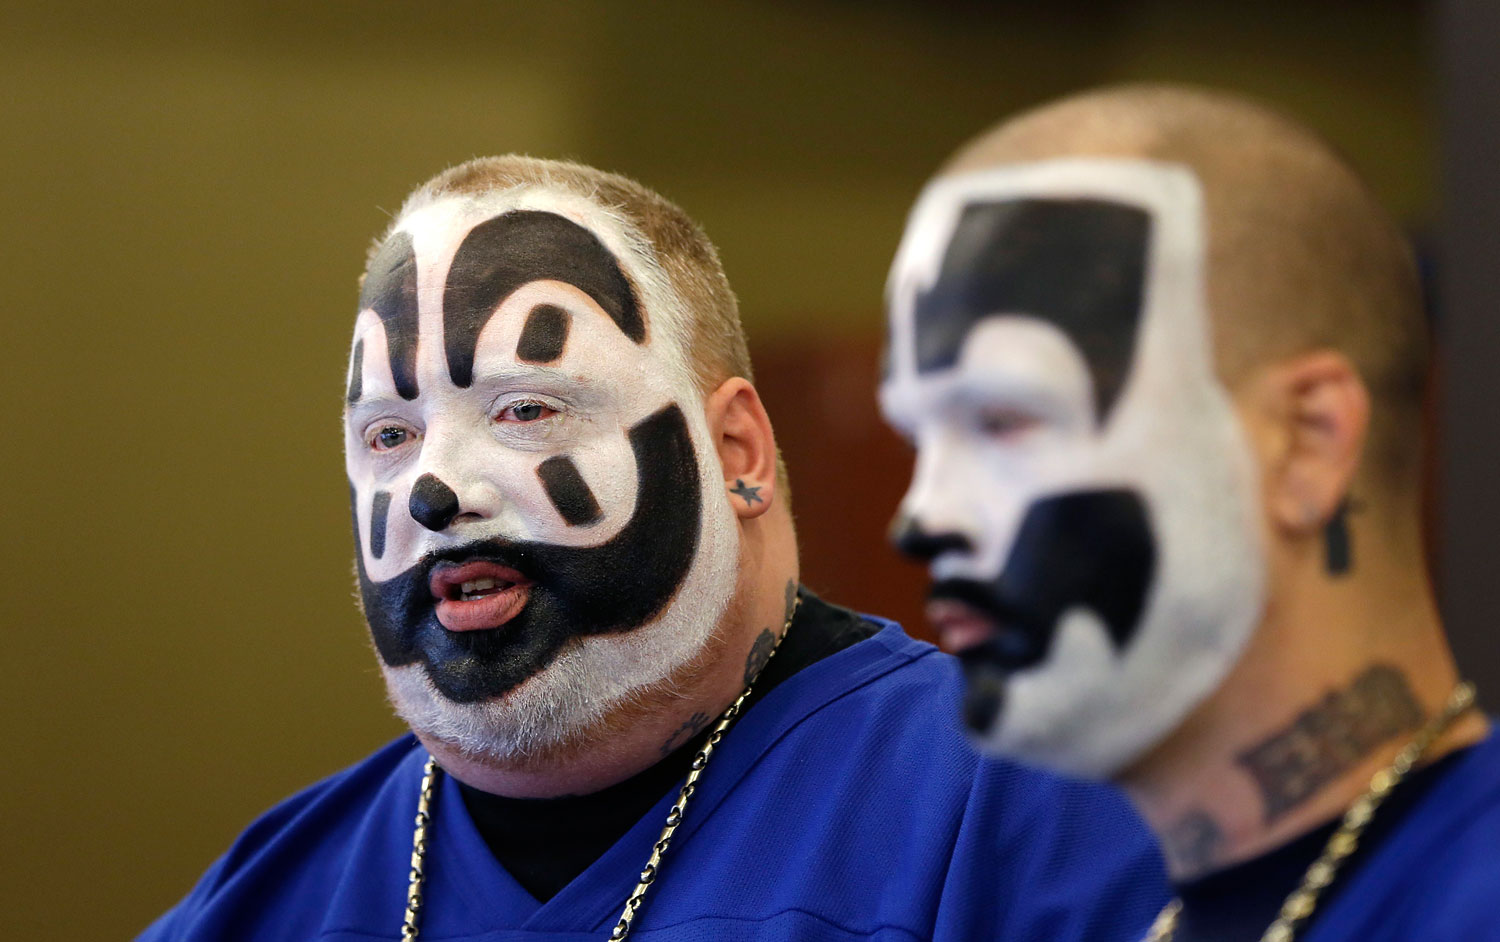 Joseph Bruce, aka Violent J, left, and Joseph Utsler, aka Shaggy 2 Dope, members of the Insane Clown Posse, address the media in Detroit, Jan. 8, 2014. The U.S. Justice Department is asking a judge to dismiss a lawsuit by Insane Clown Posse, which objects to a report that describes its fans as a dangerous gang.